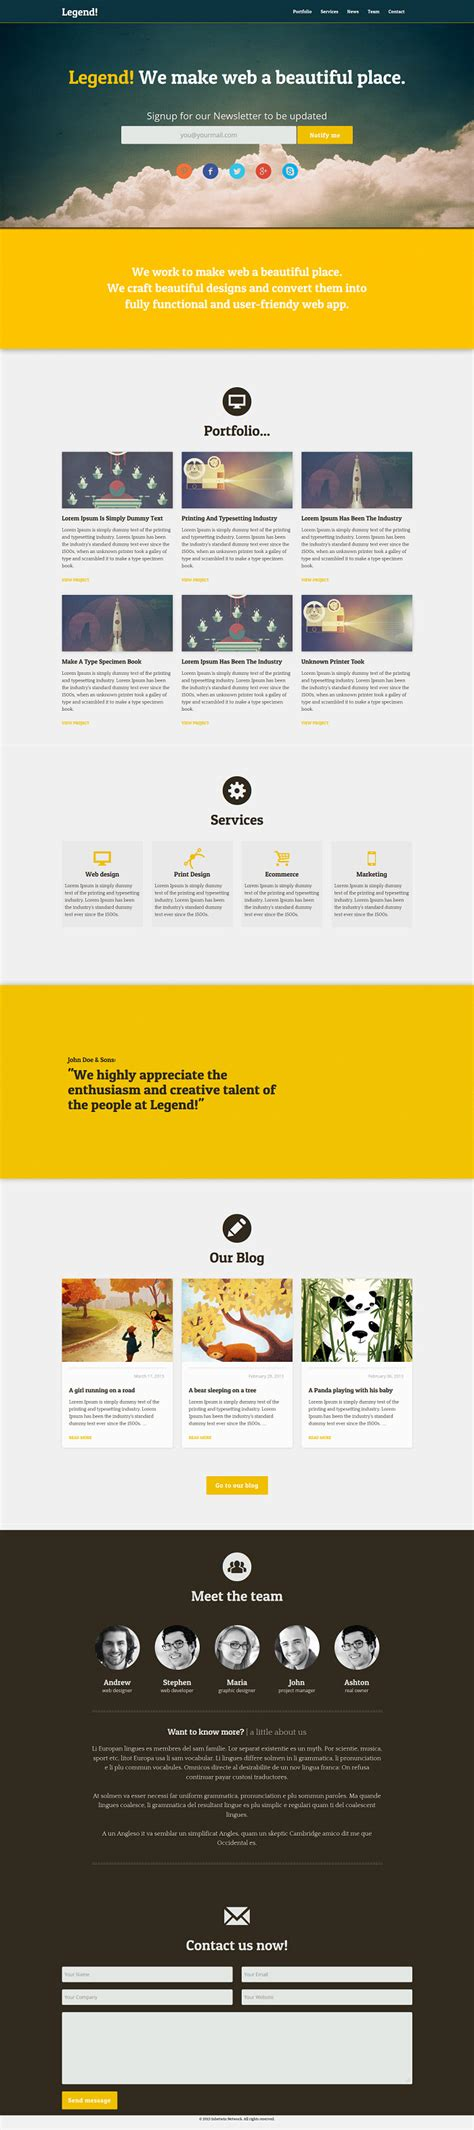 Responsive Psd Web Templates 25 Free Templates Psd Files Design Blog Free Bootstrap Website Templates